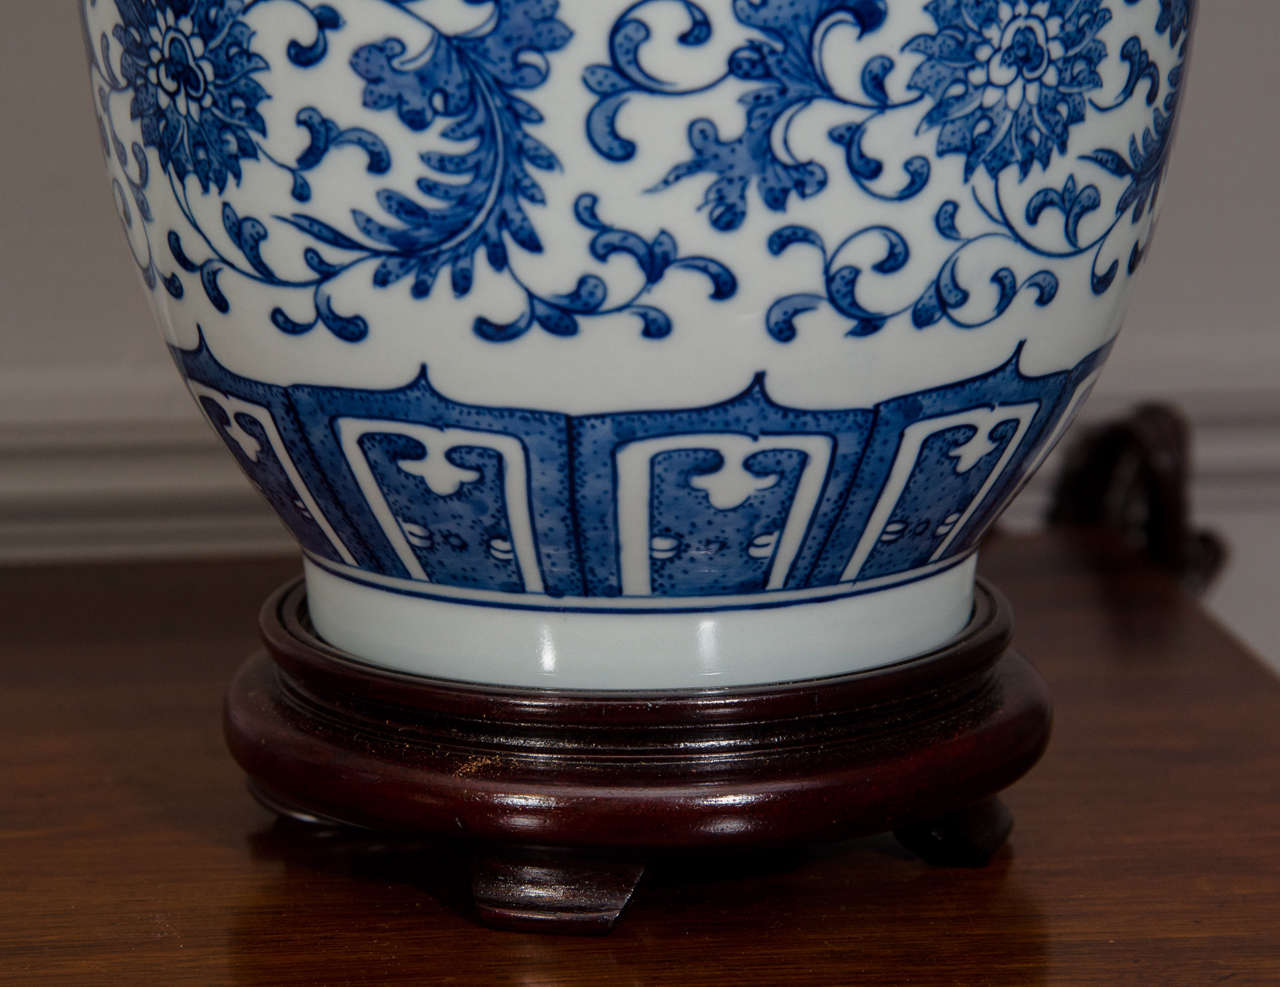 Pair Of Blue And White Porcelain Chinese Ginger Jar Lamps For Sale 1